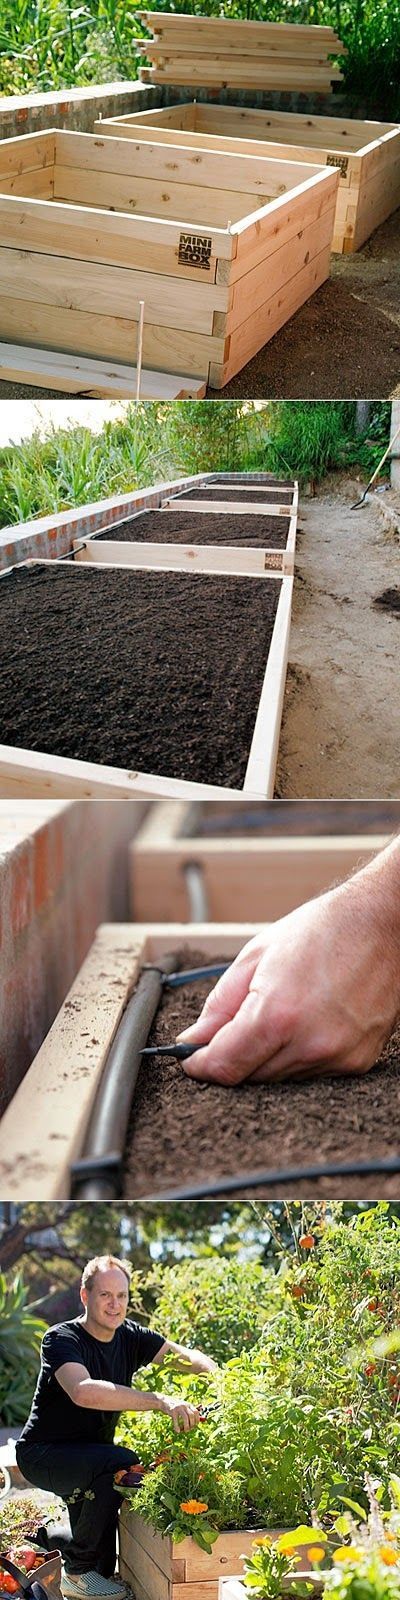 How to:  Step 1:  Set up raised-bed boxes. We choose five cedar boxes called miniframbox you can get them from Amazon .  Step 2:  Fill...